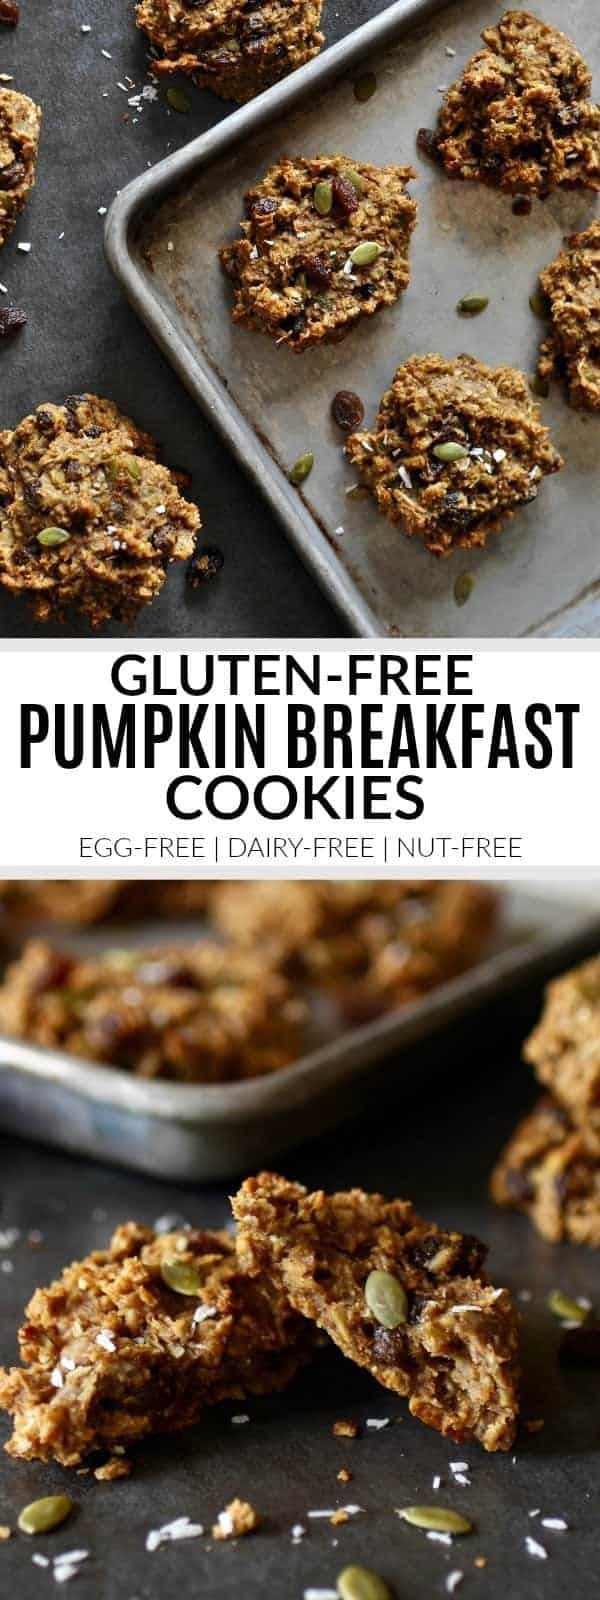 Pinterest image for Gluten-free Pumpkin Breakfast Cookies